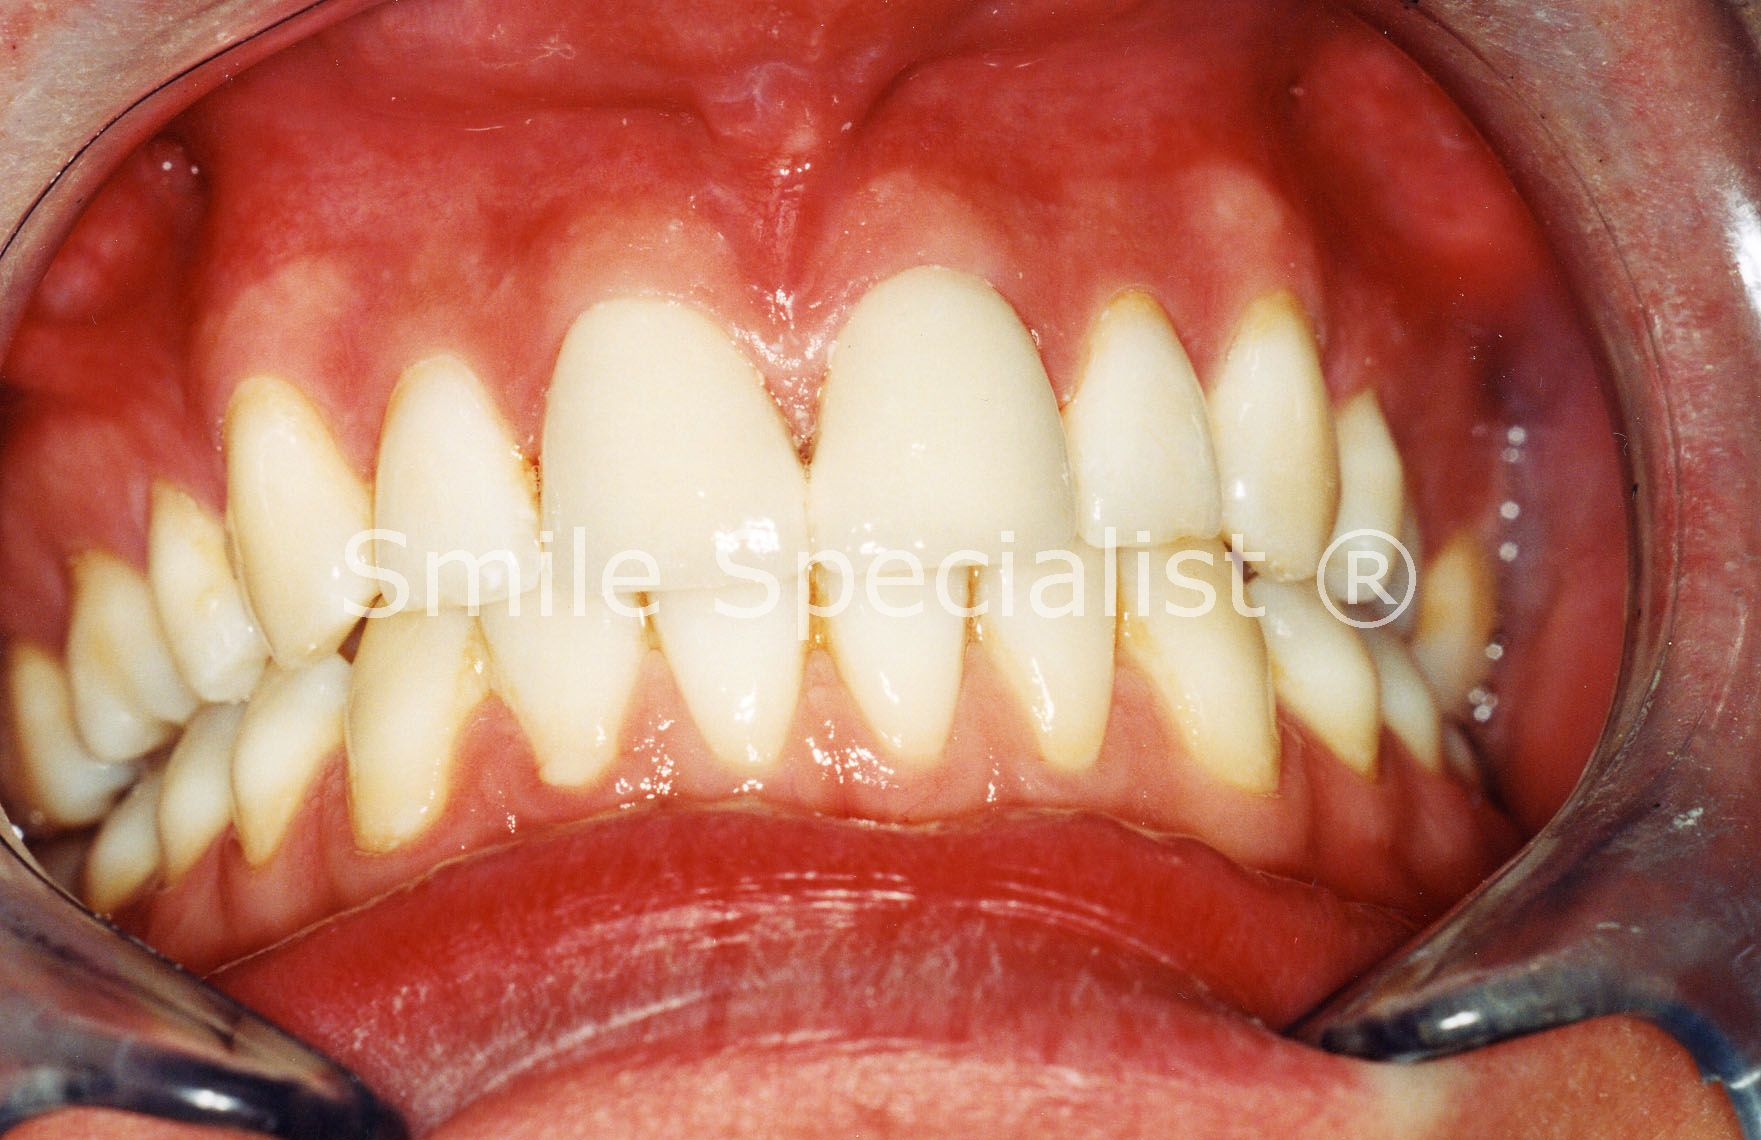 SmileSpecialist Cosmetic Crowns fitted to look Nice and Natural